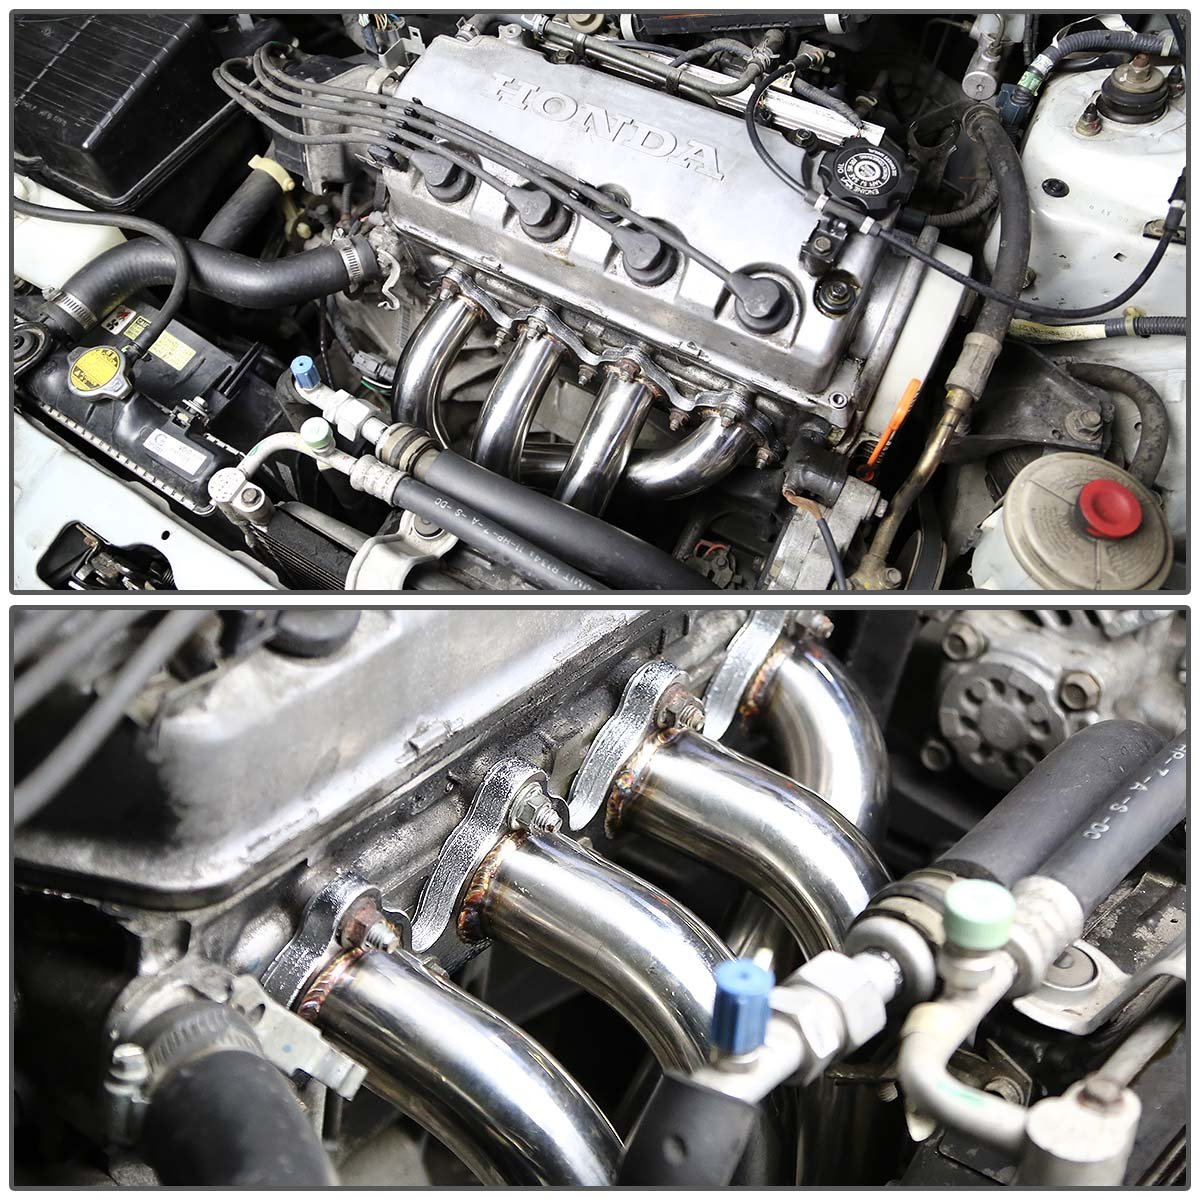 Dna Motoring Hds Hc88 Stainless Steel 4 2 1 Exhaust Header For Honda Prelude Fuel Filter D Series Headers Automotive Tibs